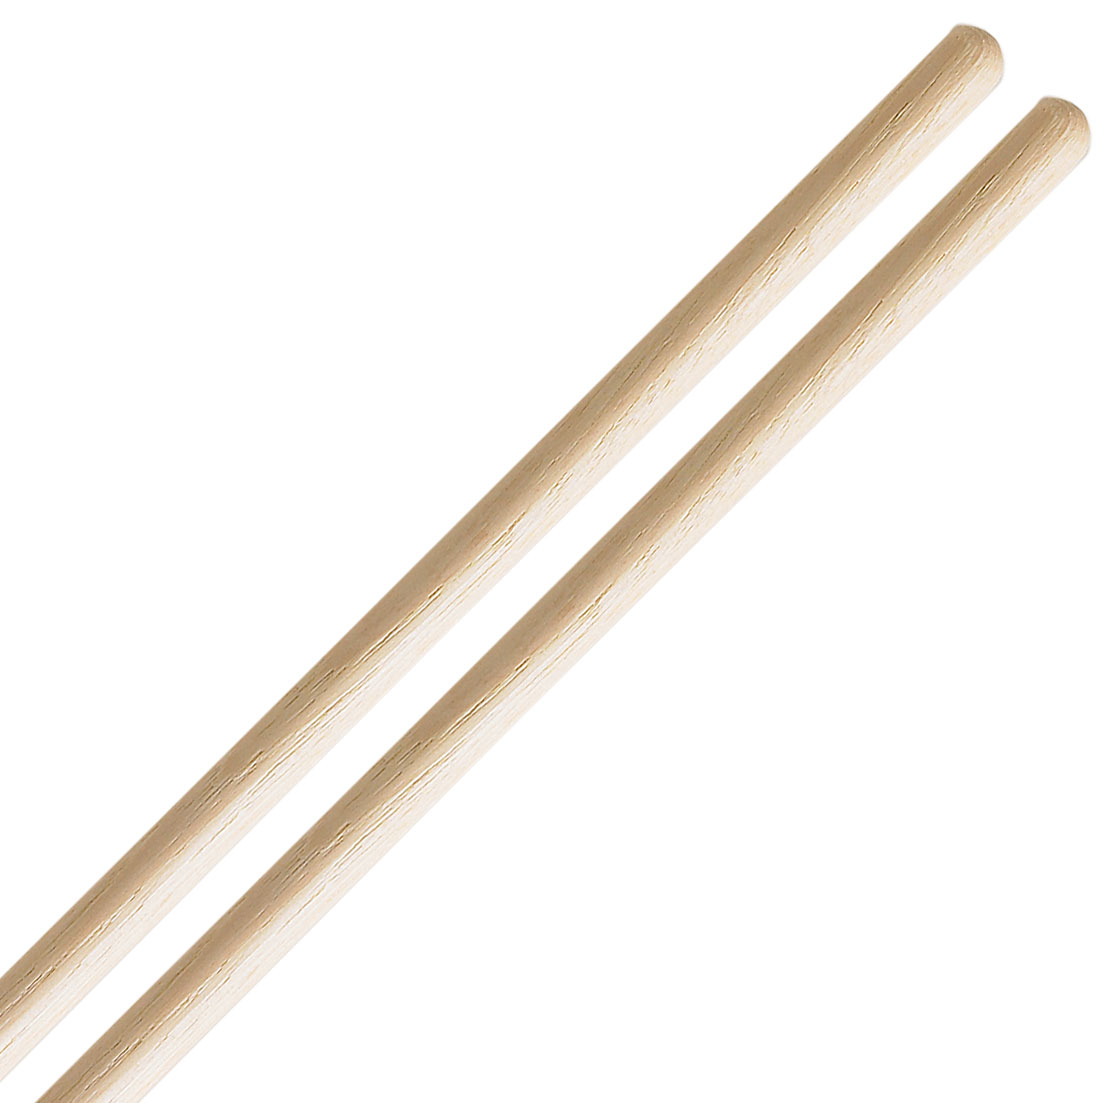 Innovative Percussion Lalo Davila Azucar Signature Timbale Sticks - 4 Pairs